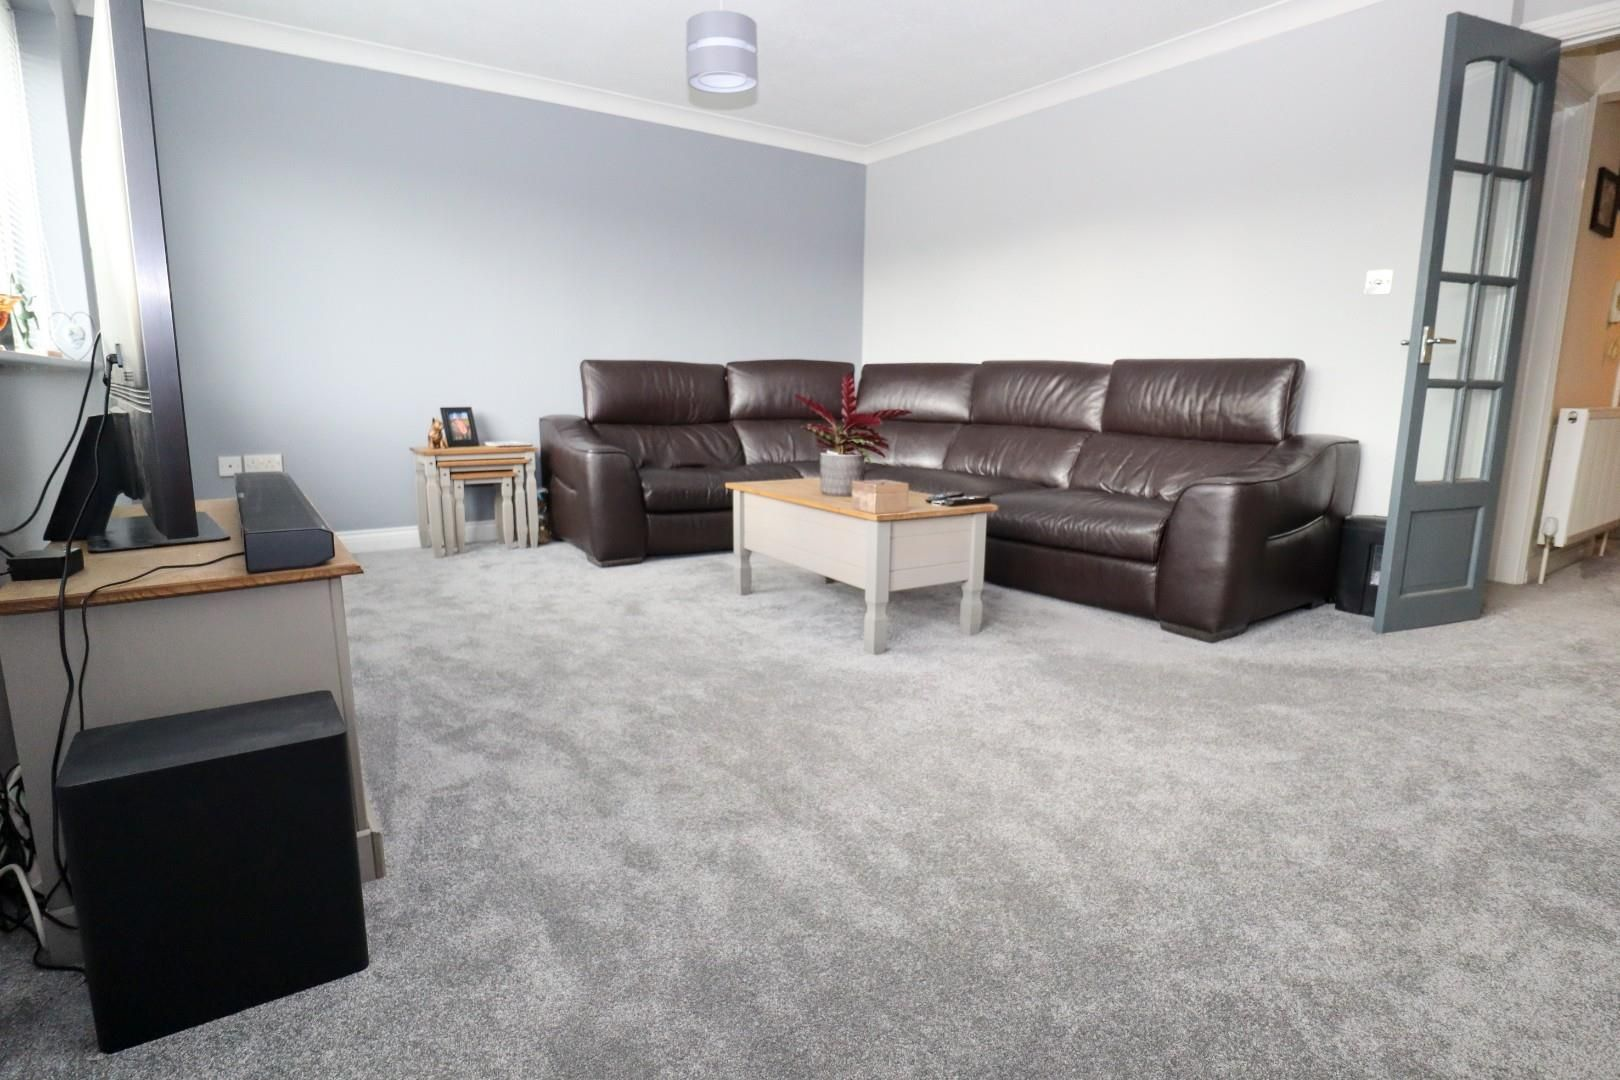 2 bed duplex for sale 3